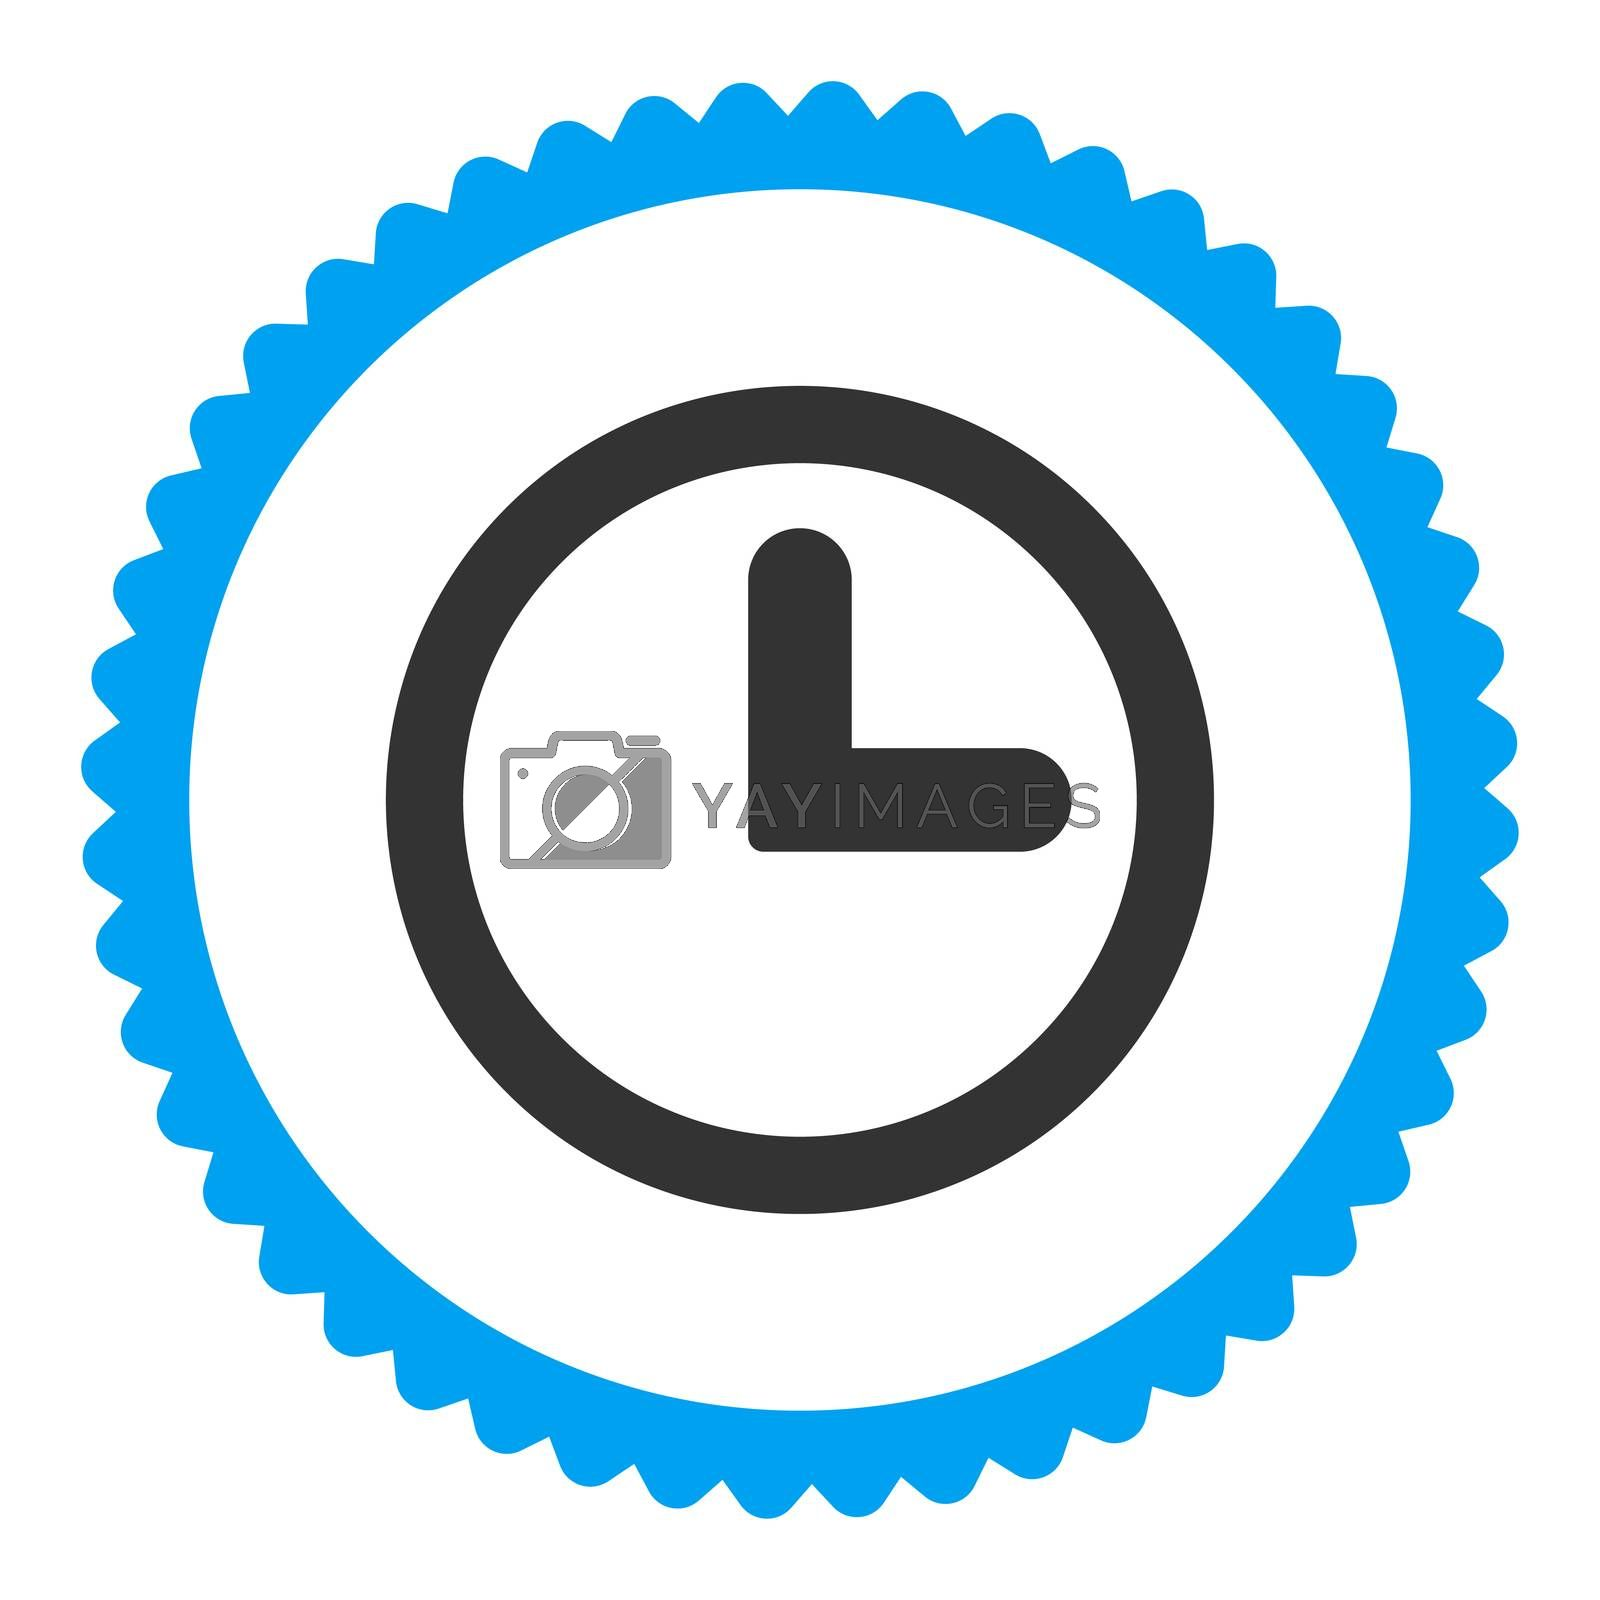 Clock flat blue and gray colors round stamp icon by Aha-Soft